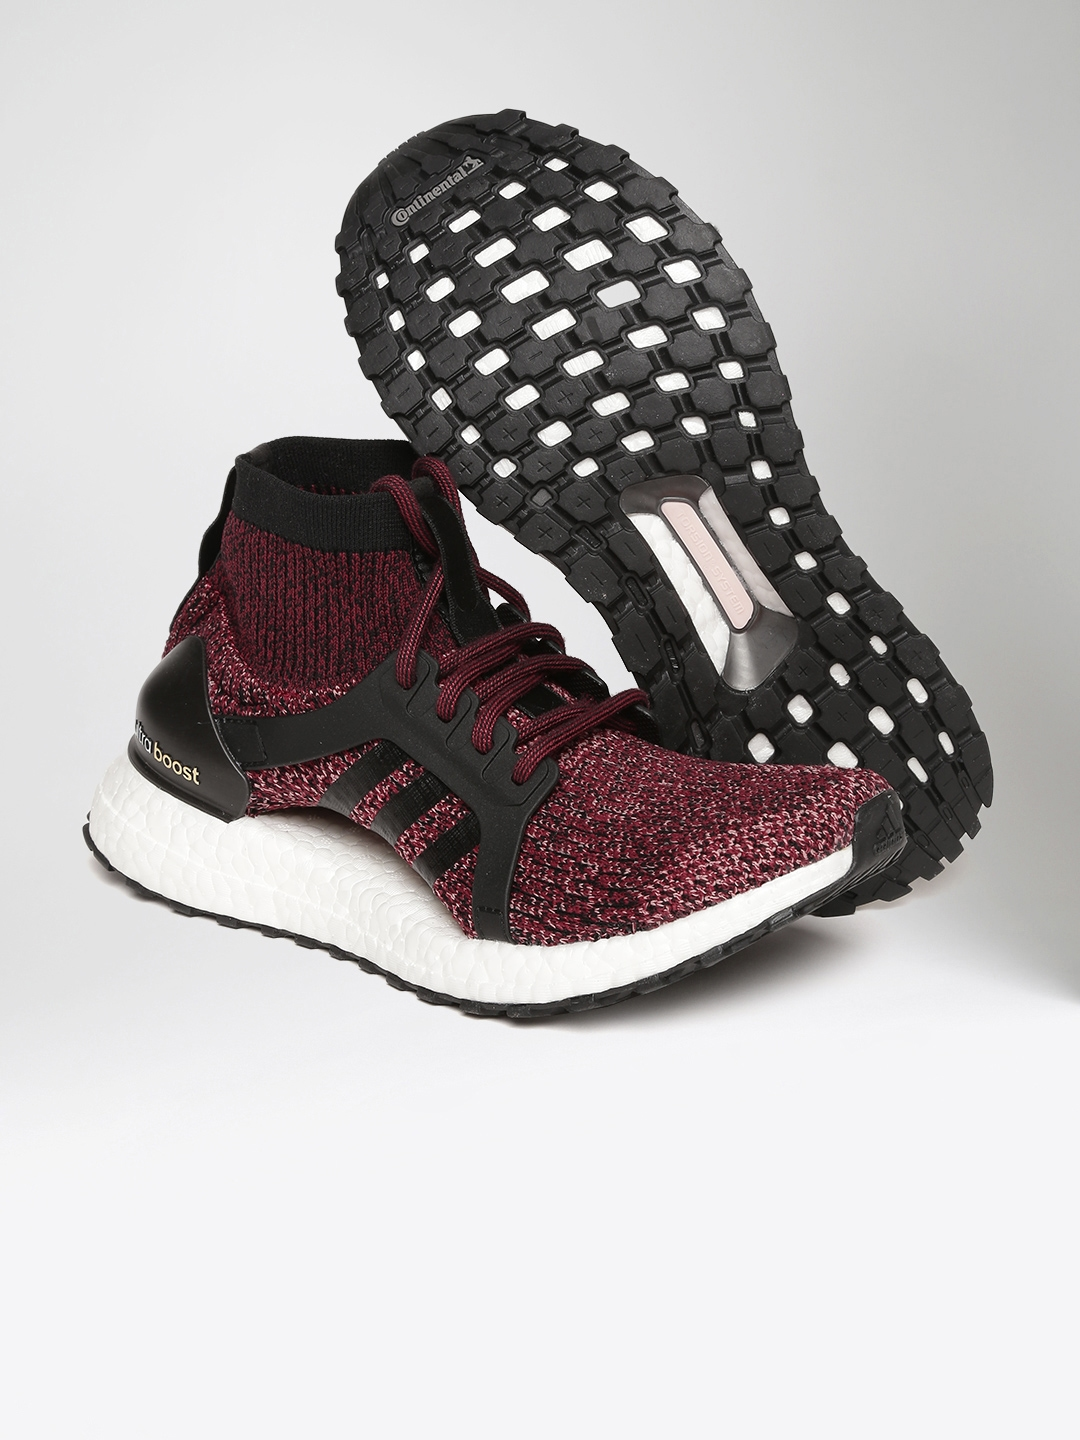 436361bdb3a39 ADIDAS Women Burgundy   Black Ultraboost X All Terrain Patterned Running  Shoes